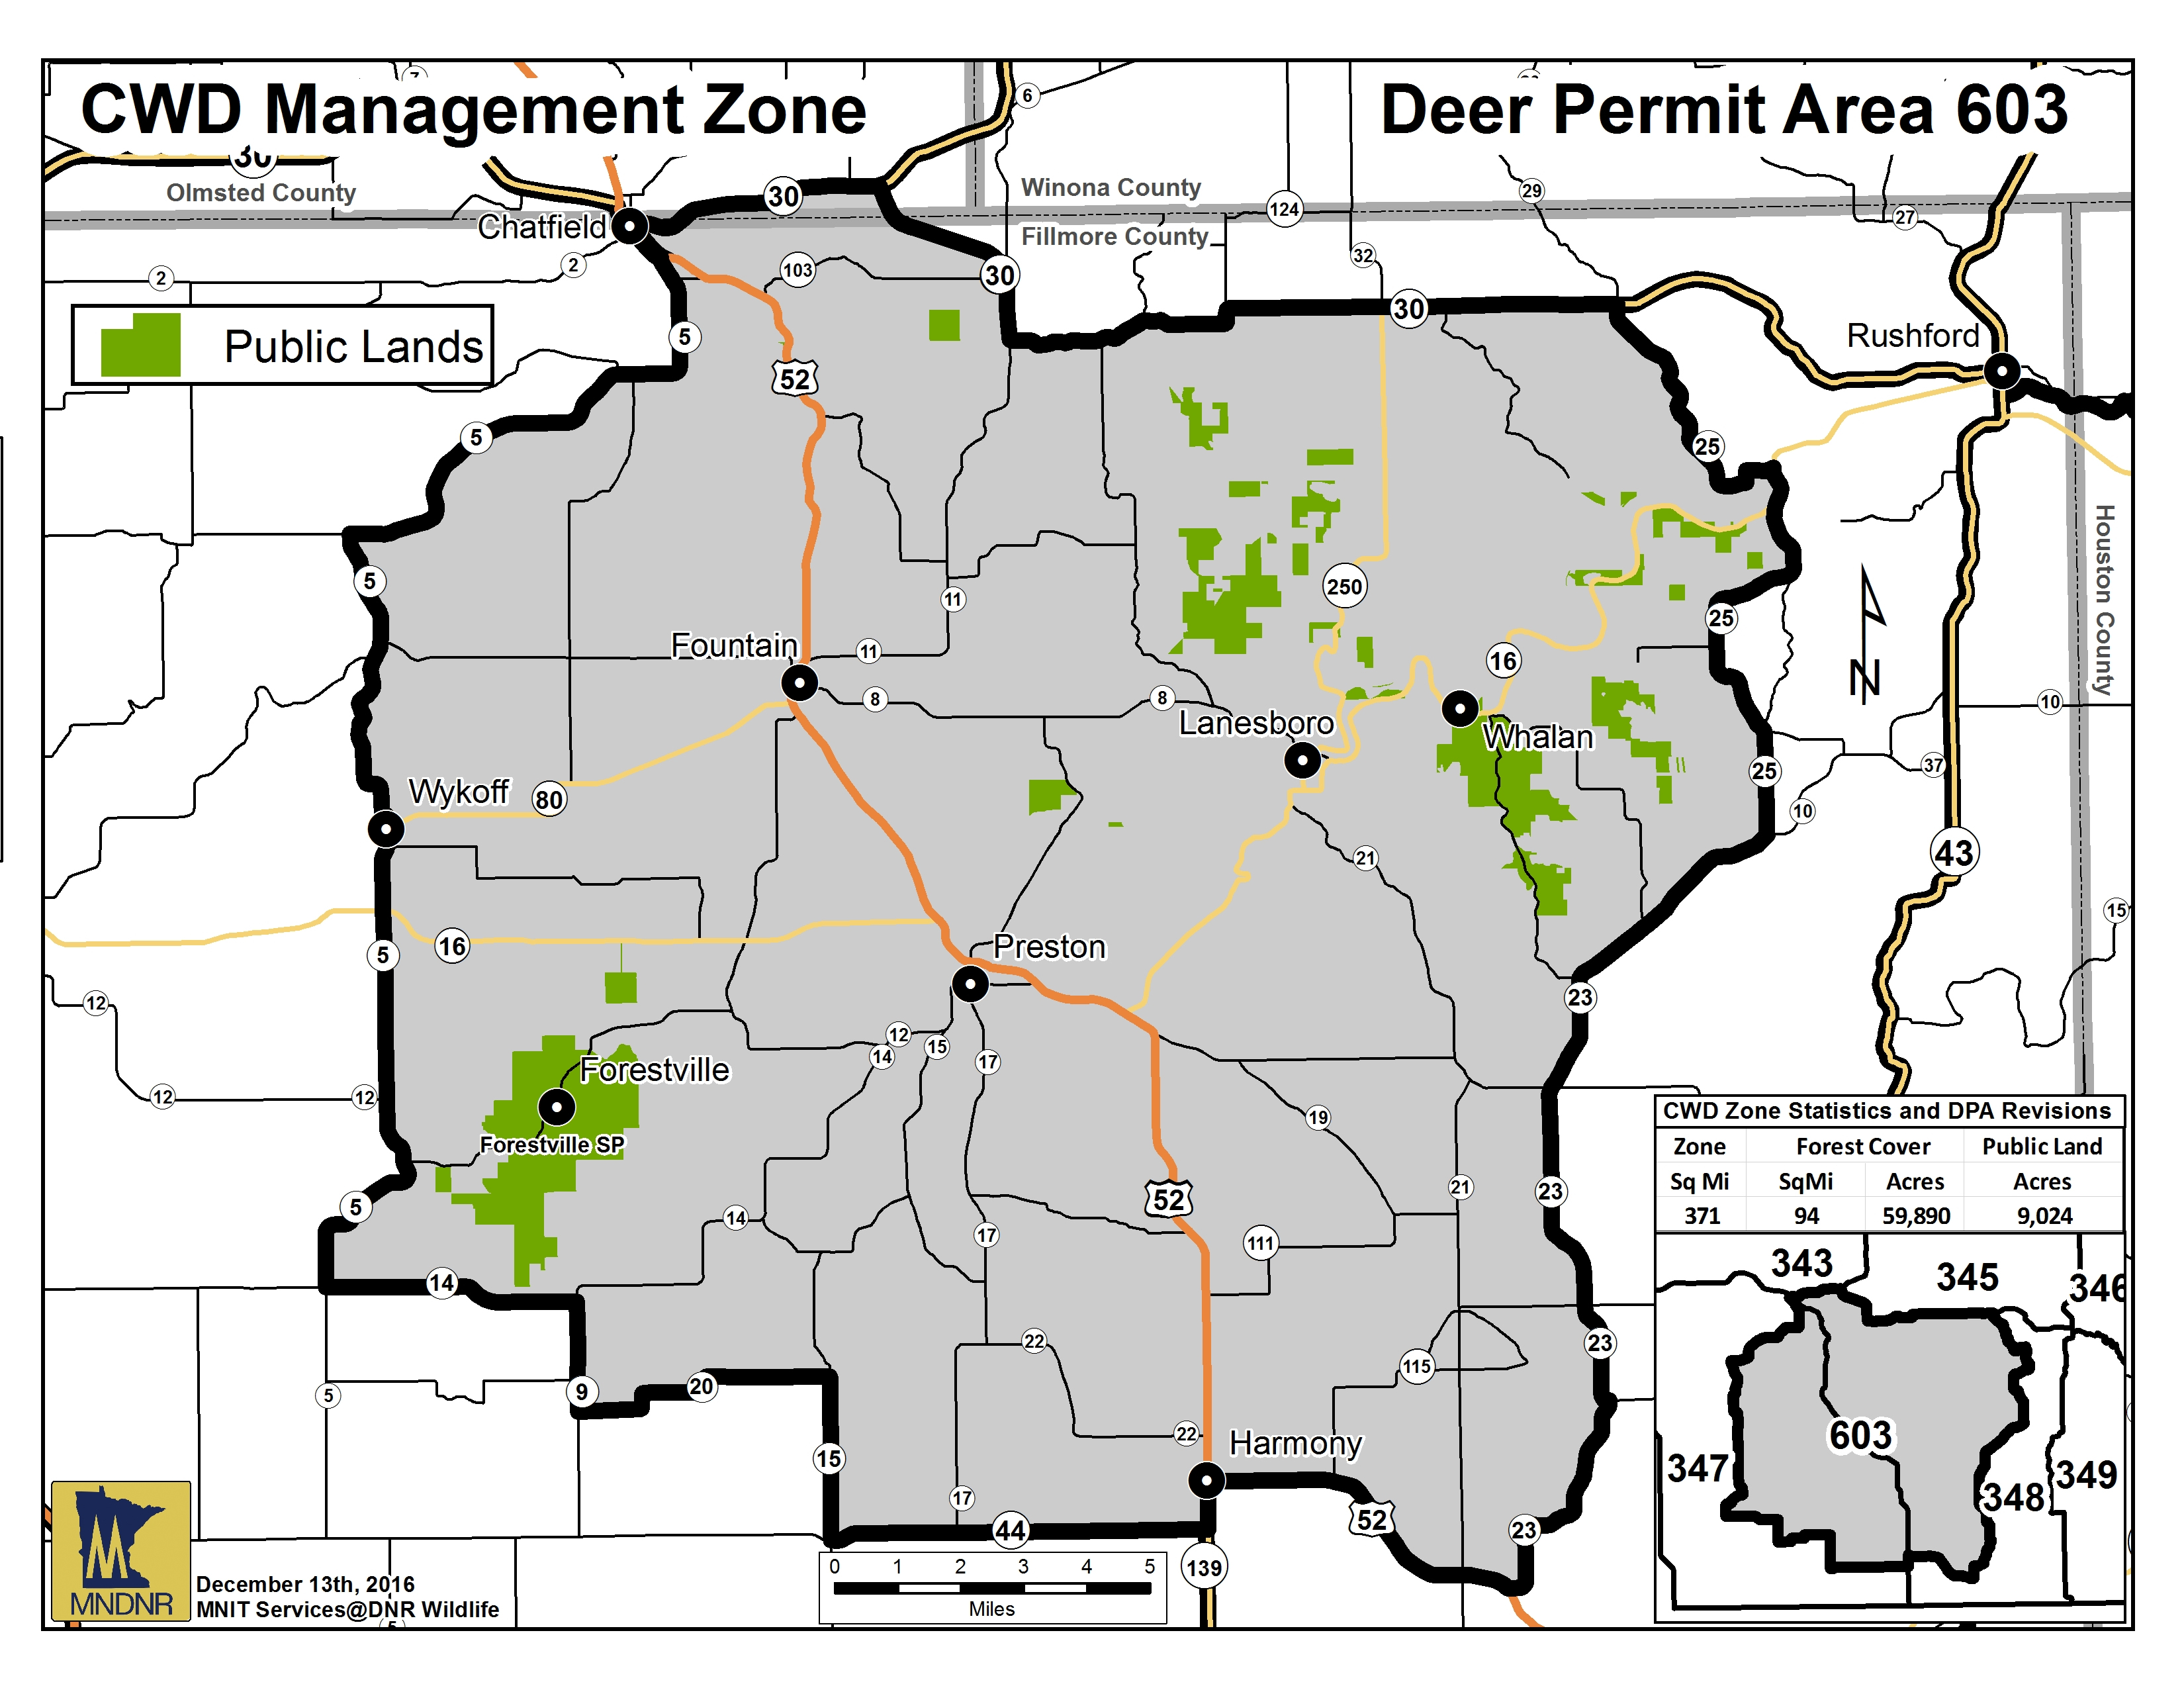 Map showing boundaries for CWD Management Zone in southeast Minnesota.